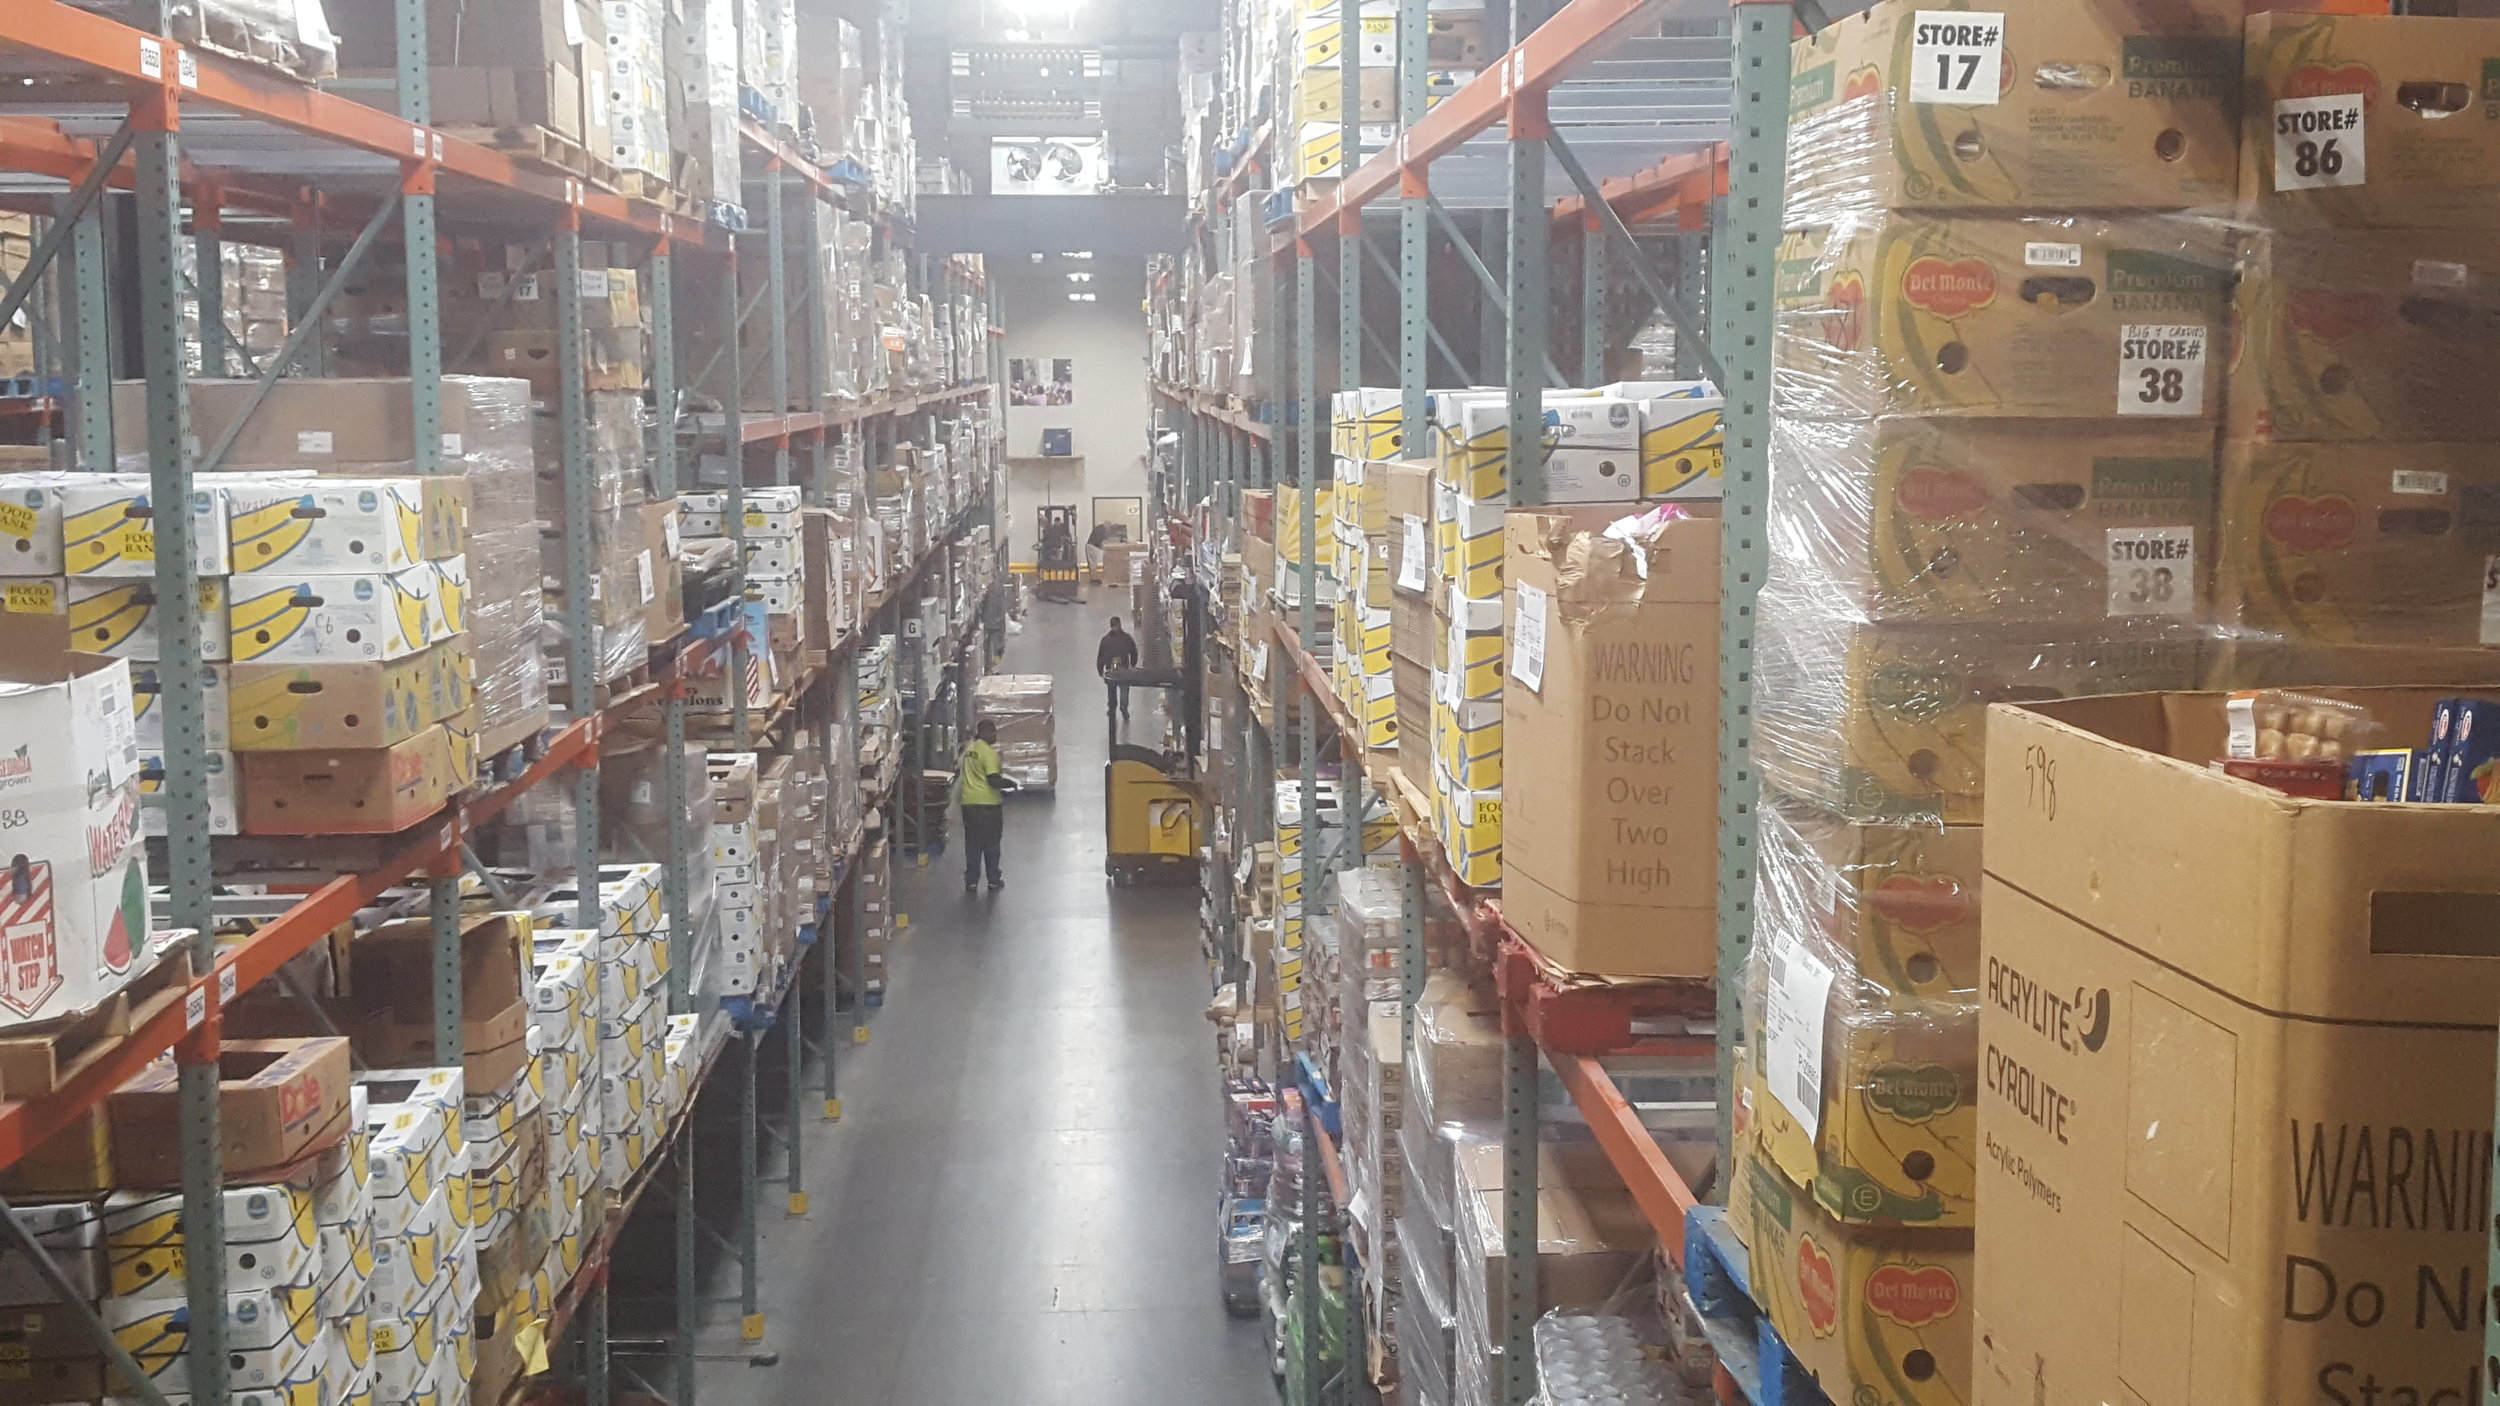 The Connecticut Food Bank Warehouse in Wallingford.